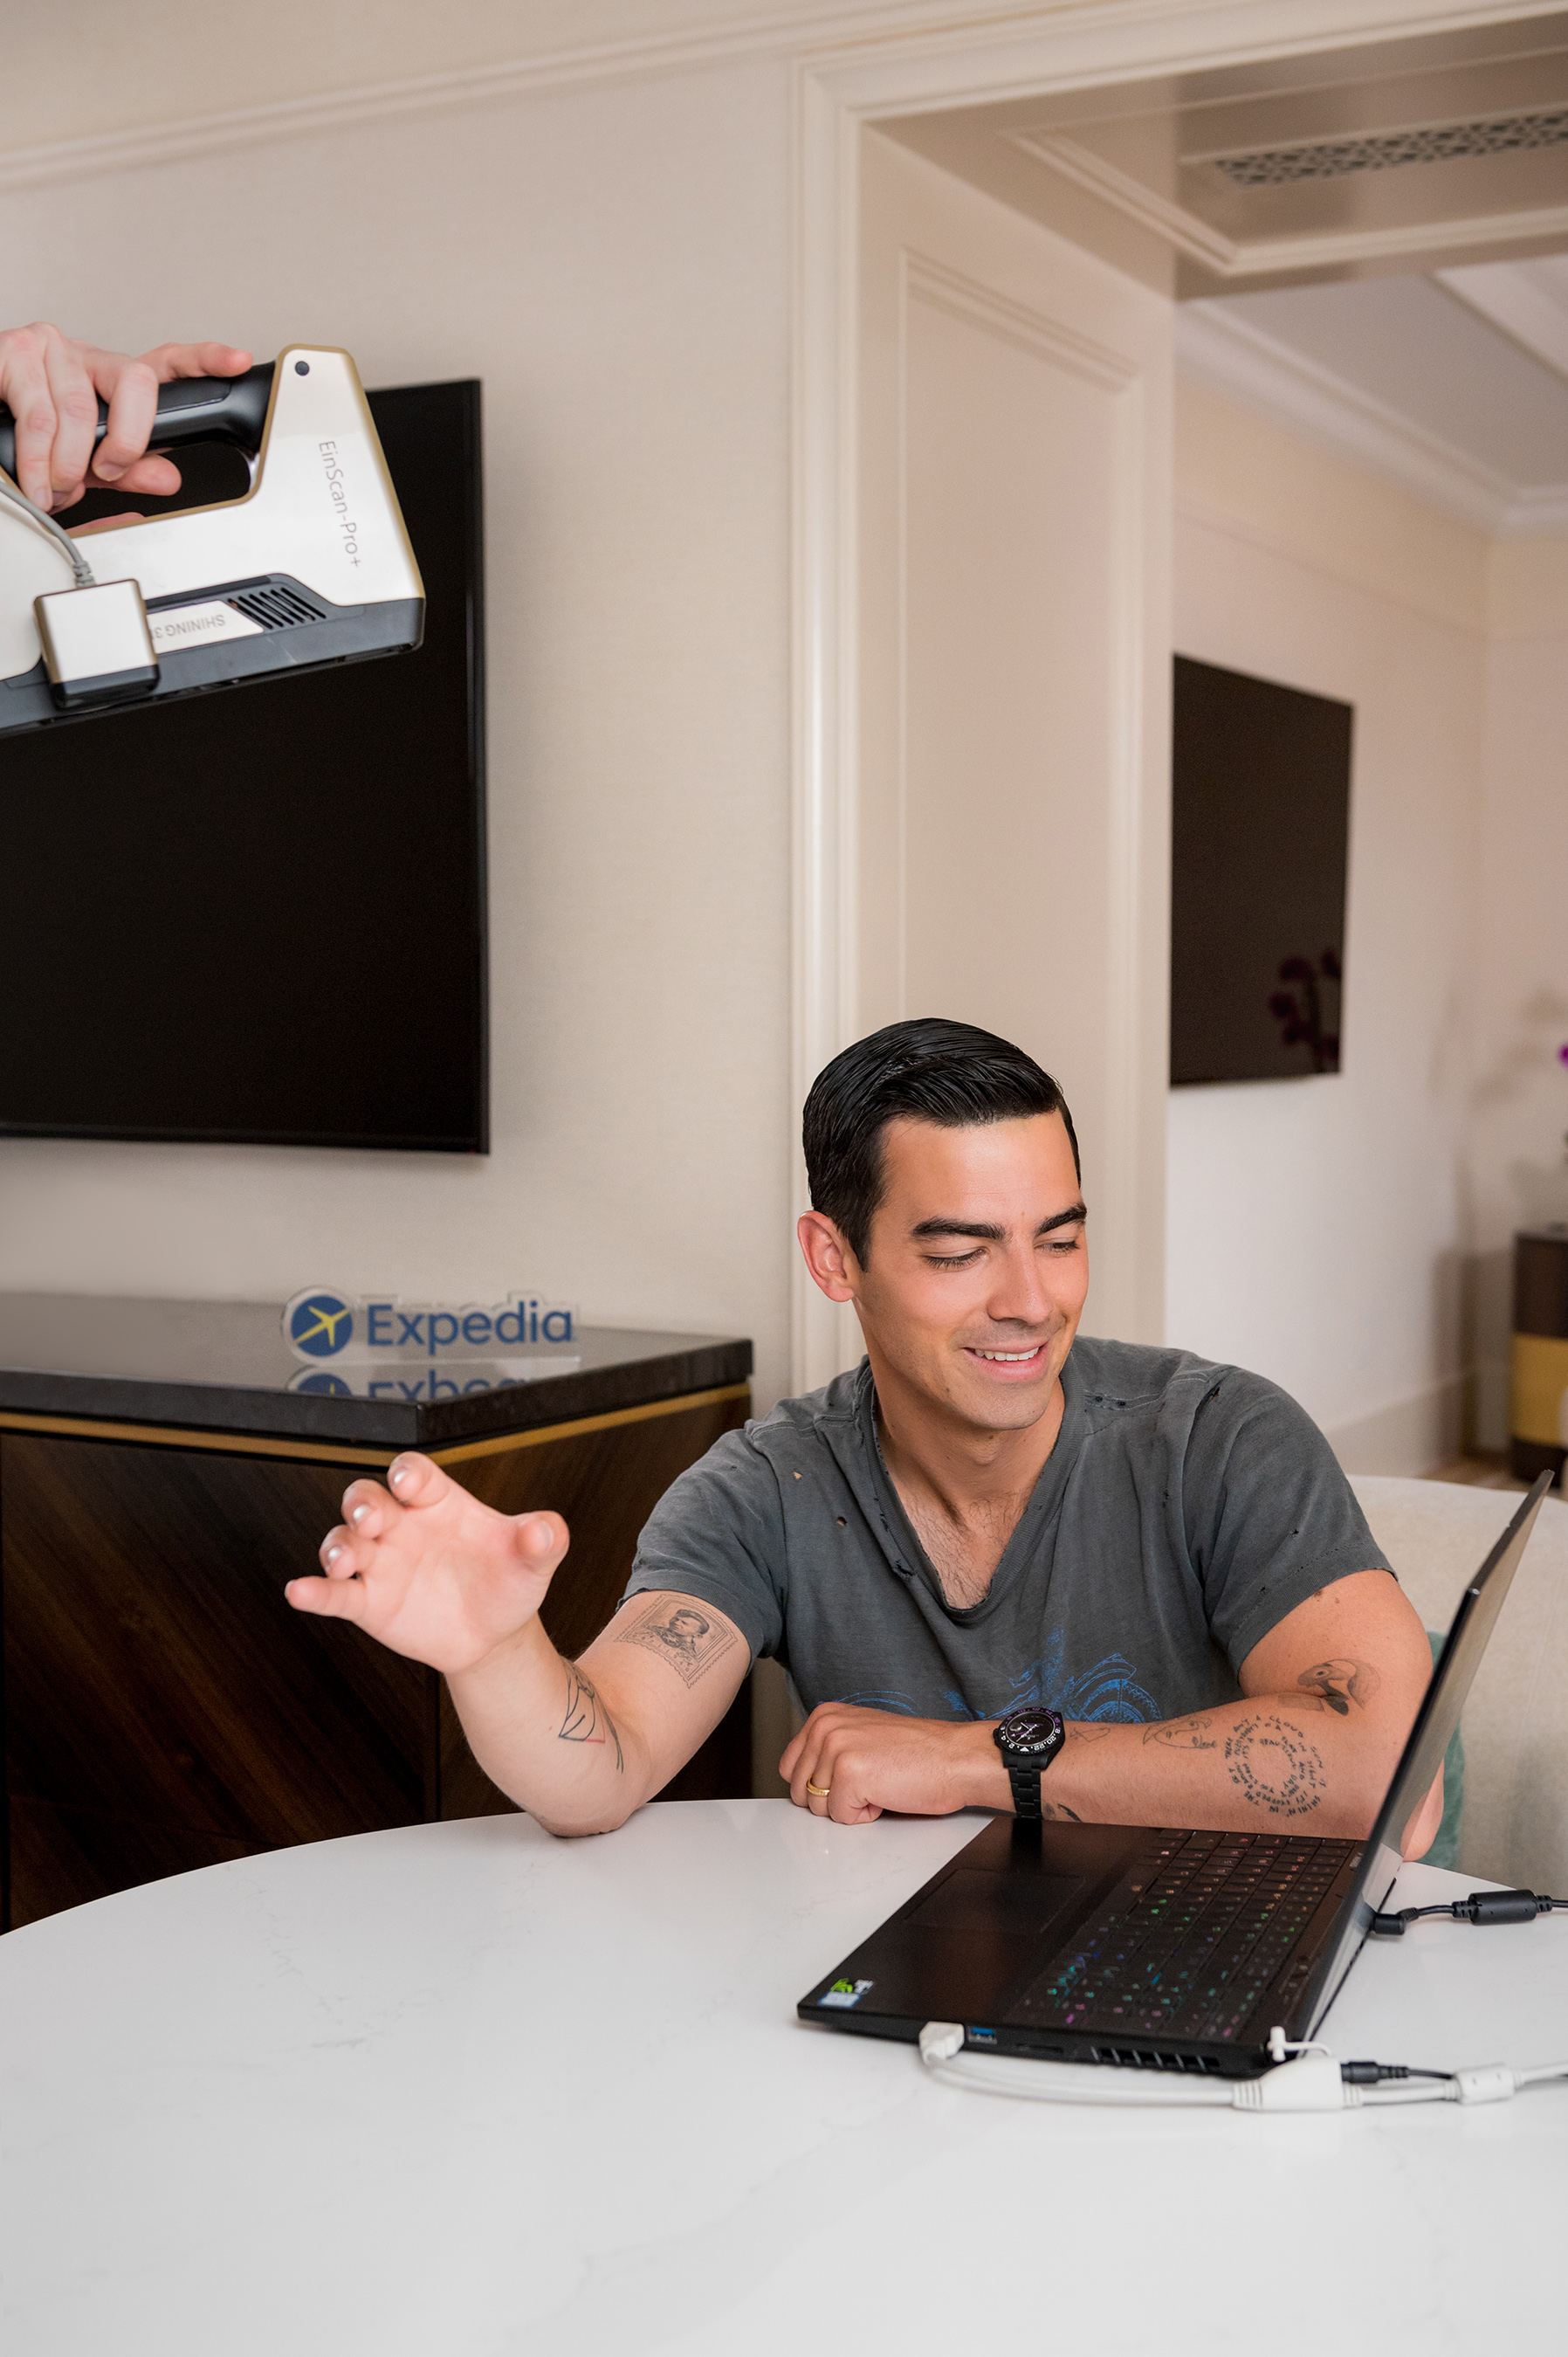 A sneak peek at the making of the Expedia Helping Hand - an exact replica of Joe Jonas's right hand that will be offered in support to travelers who are eager to travel the world again